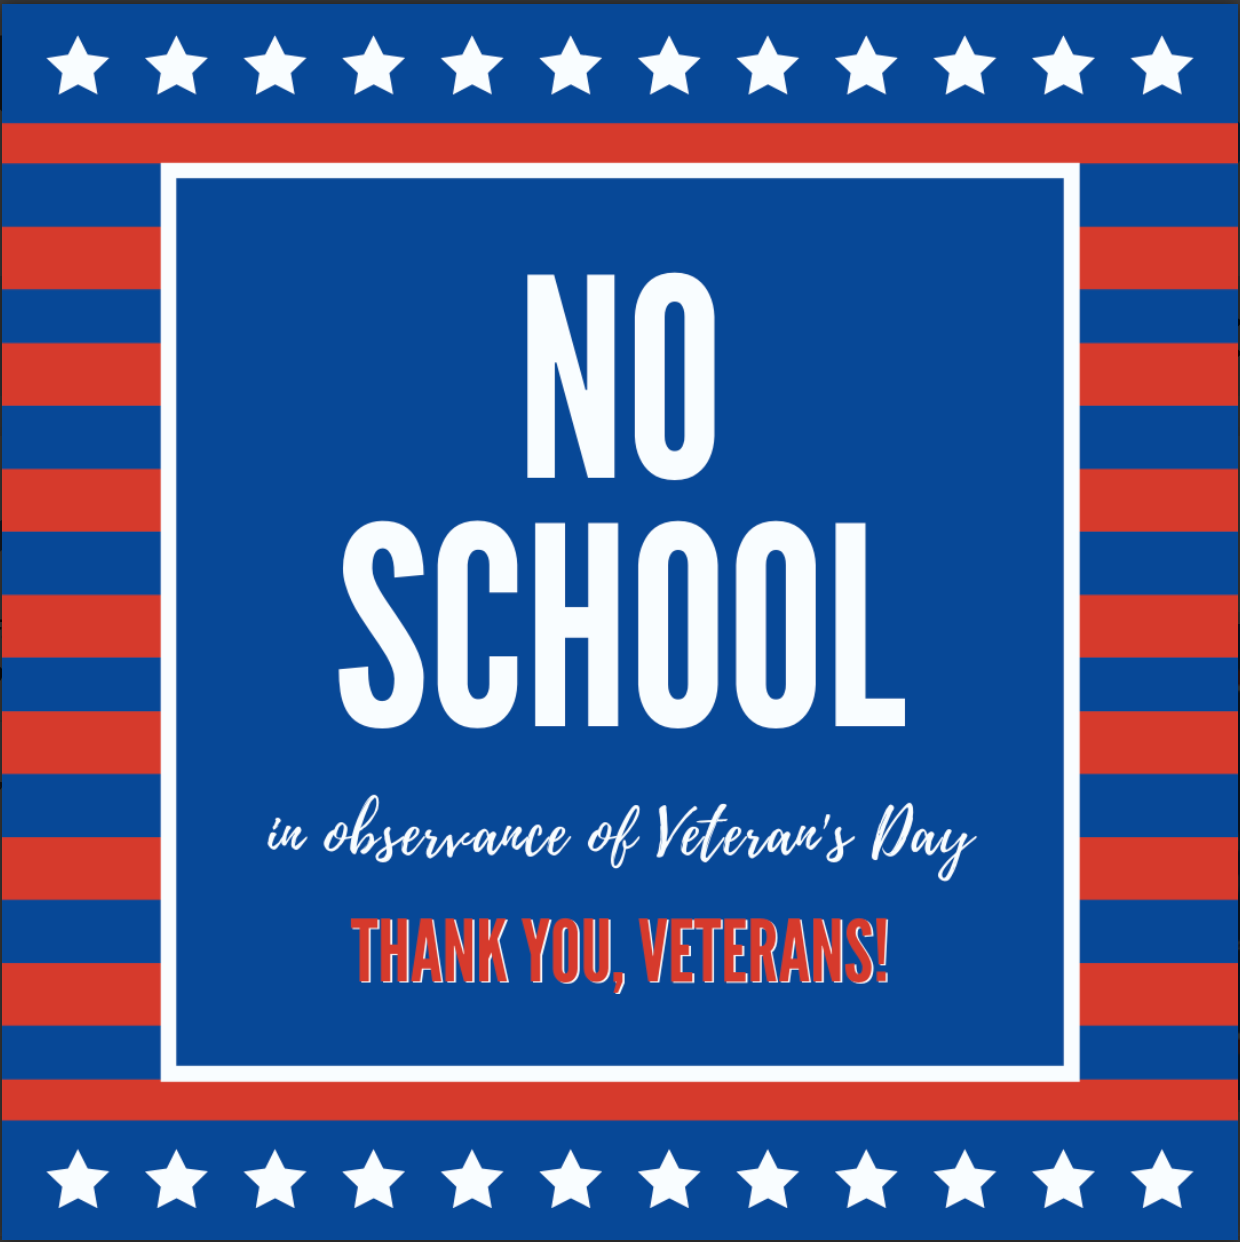 no school in observance of veterans day thank you veterans